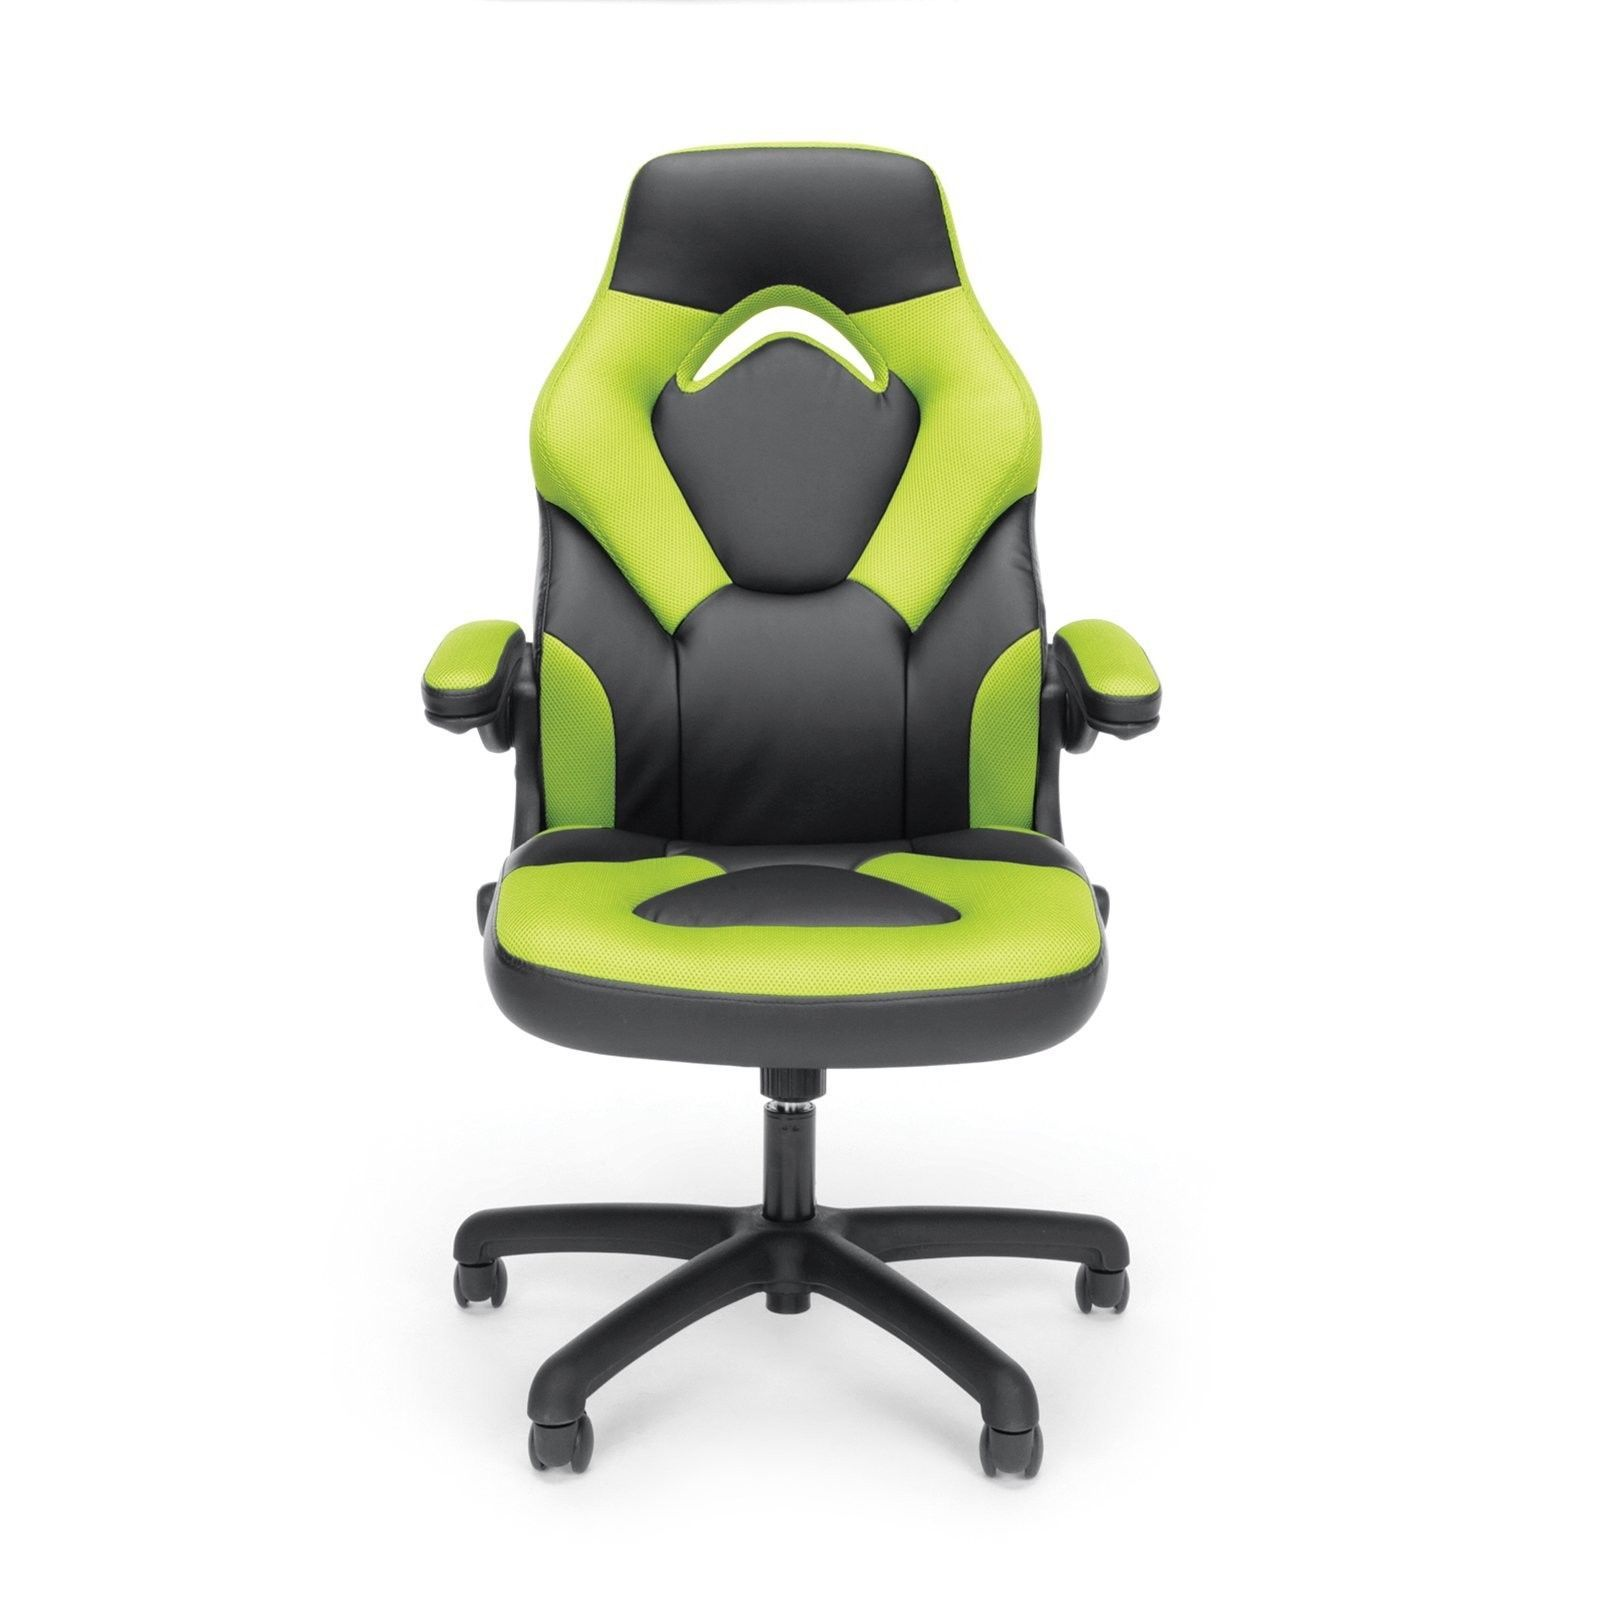 ergonomic office chair ebay rocking with cushions black green gaming racing style leather high computer seat